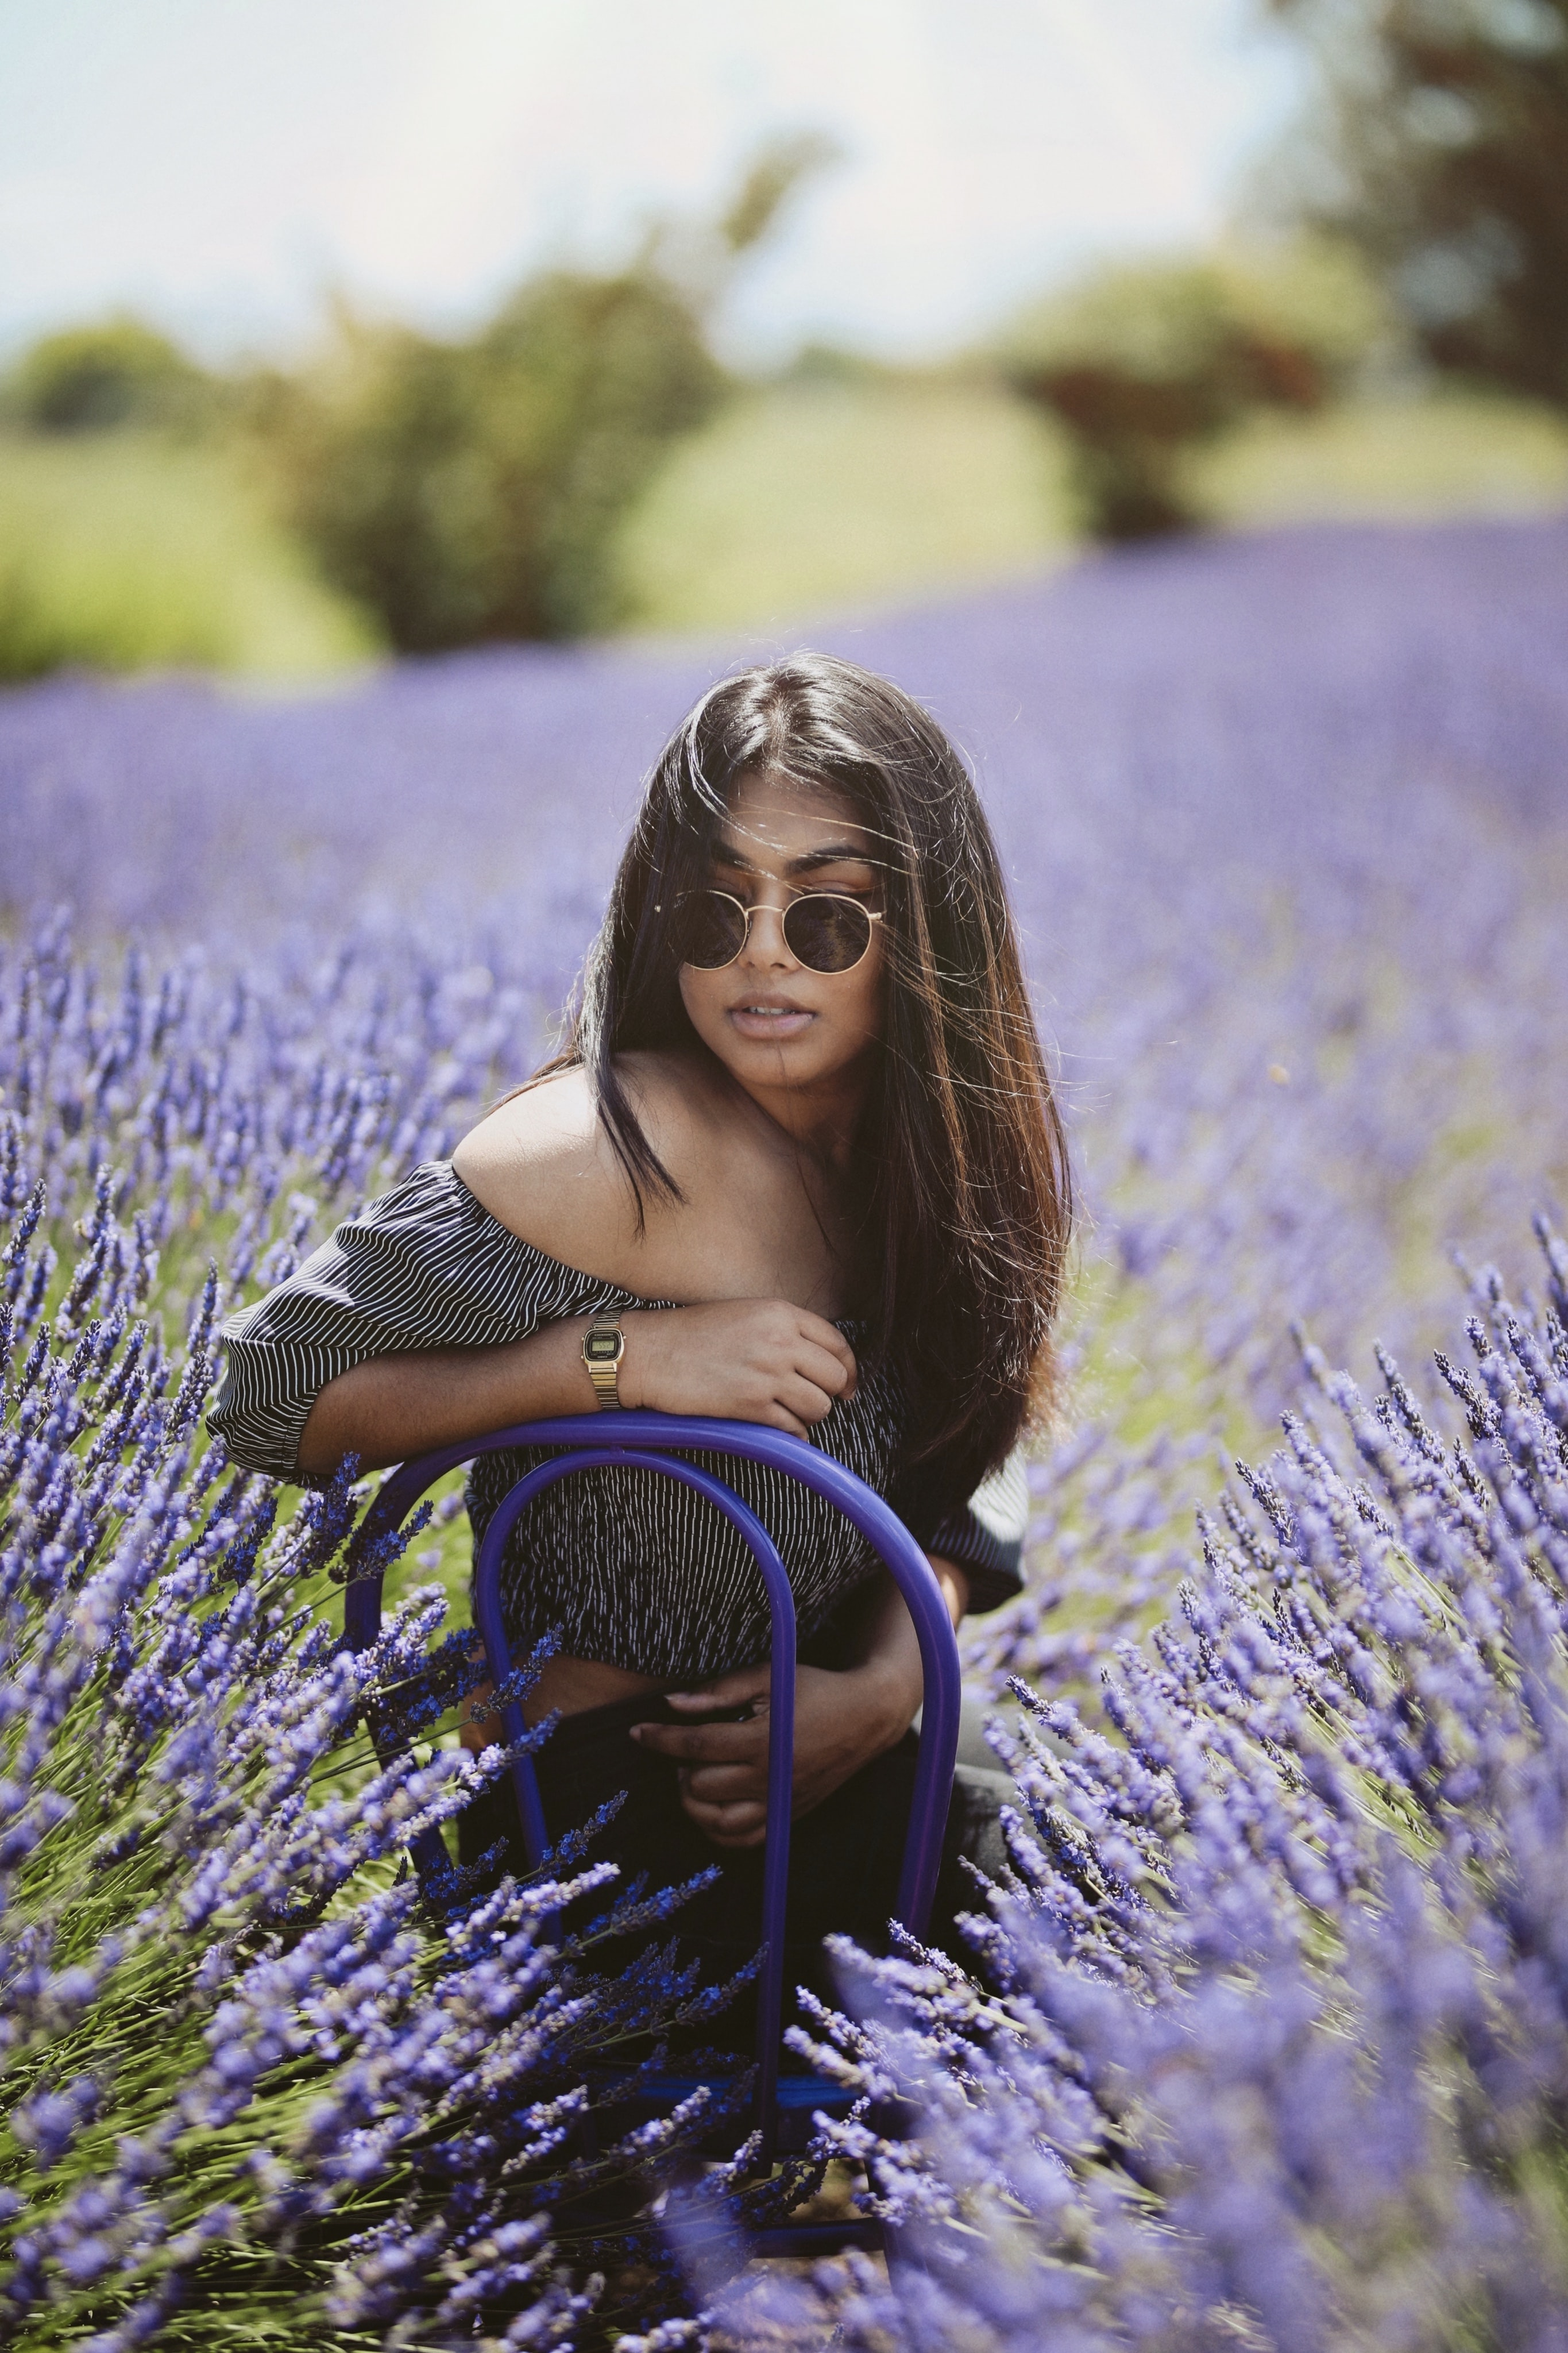 woman in the middle of the lilac flower field